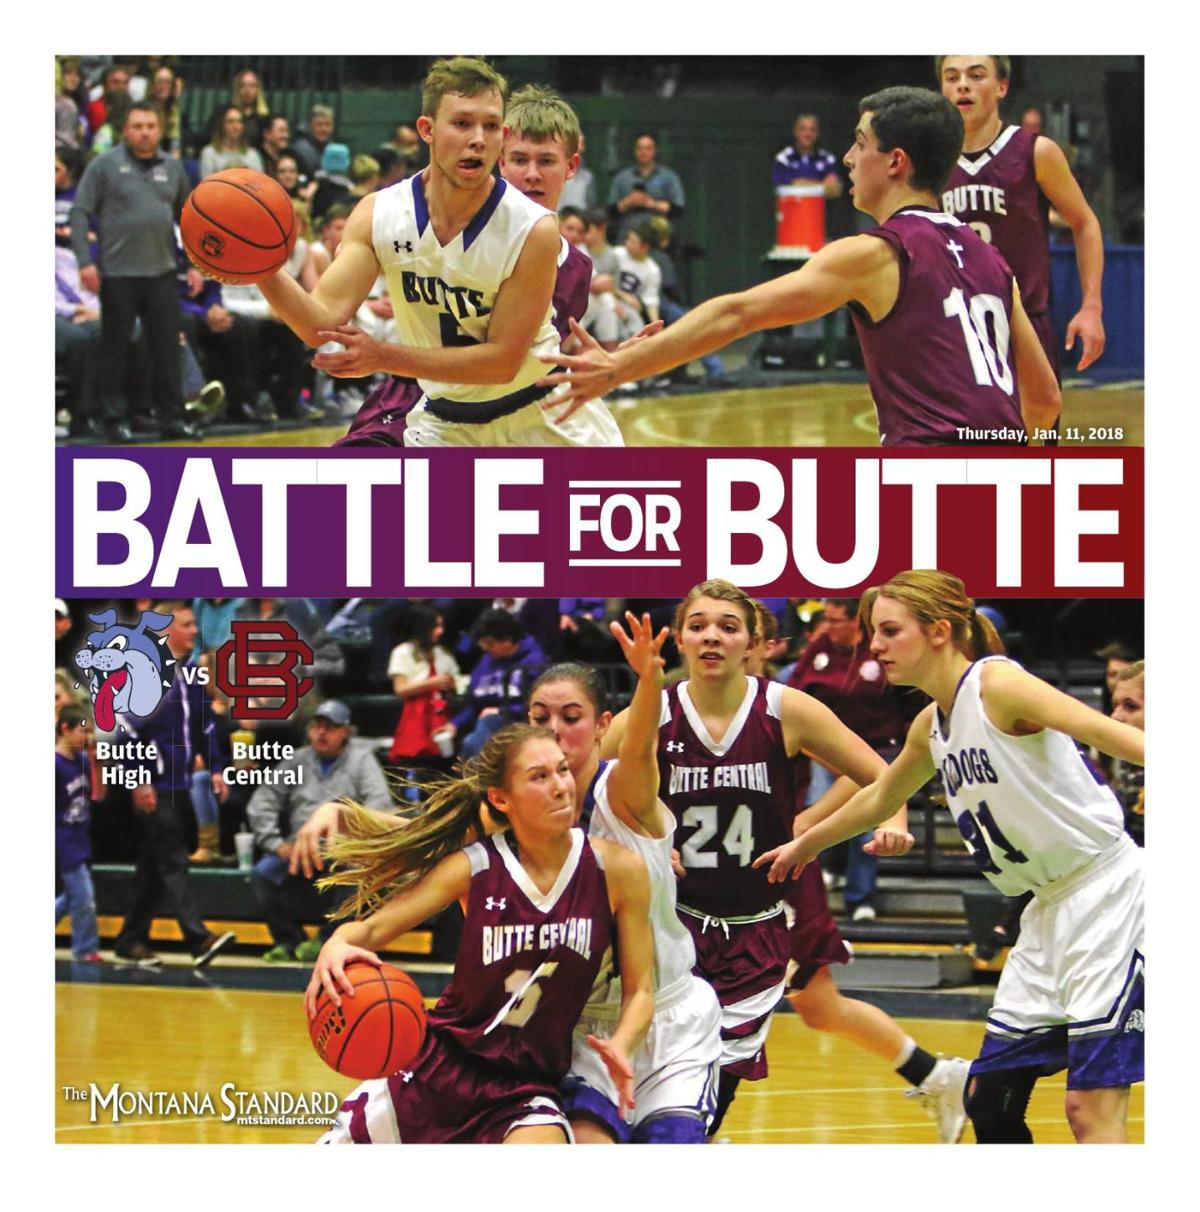 Battle For Butte - Crosstown Rivalry - January 11, 2018